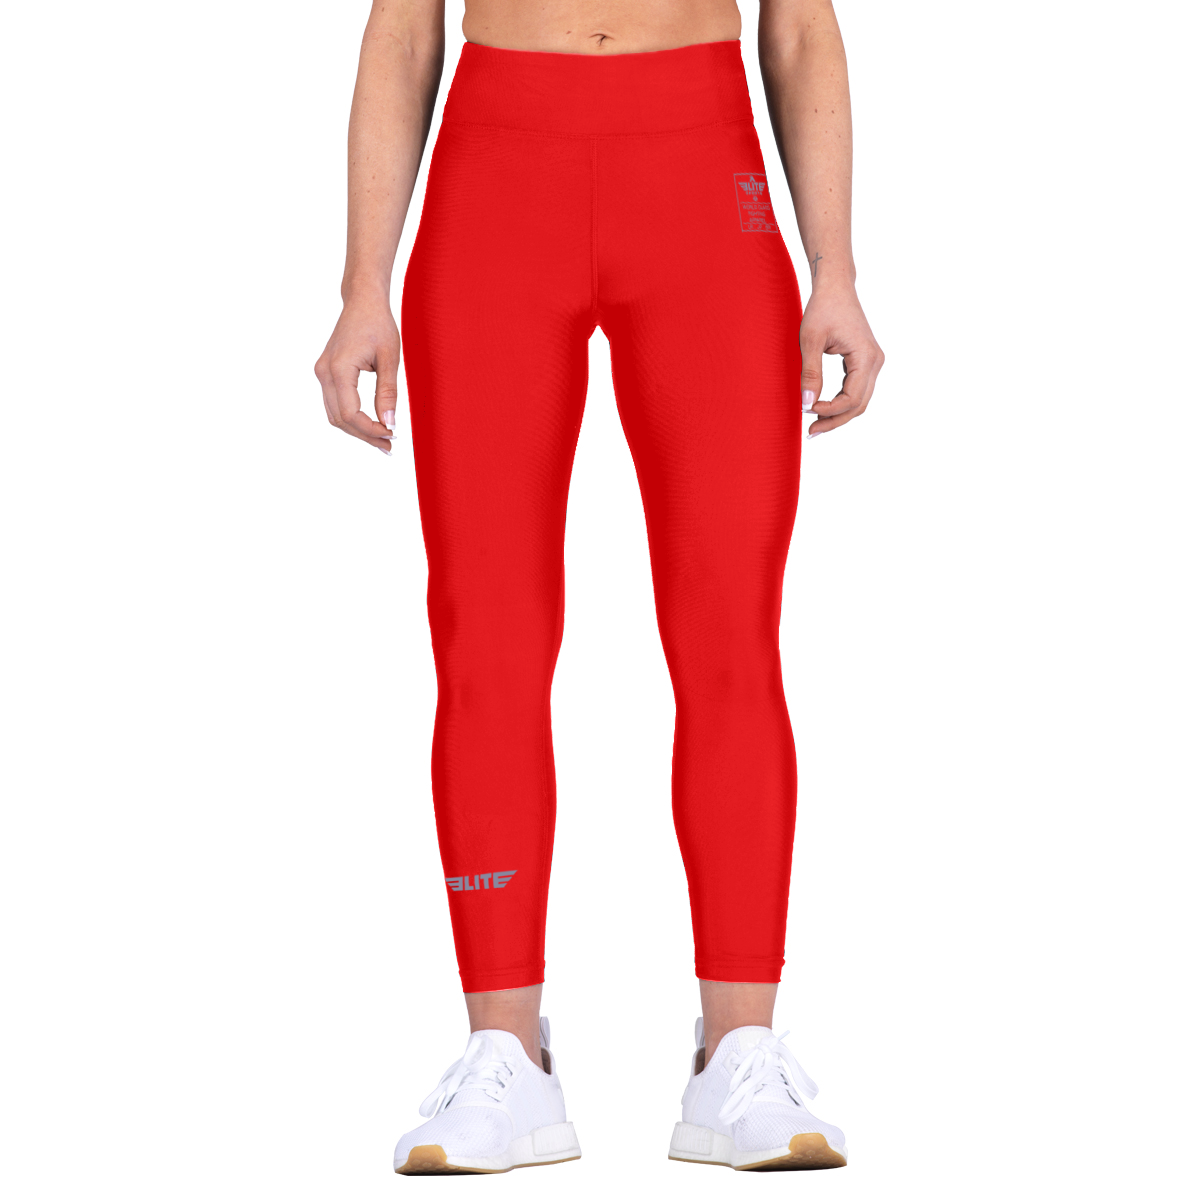 Elite Sports Red Women Compression Bjj Spat Pants